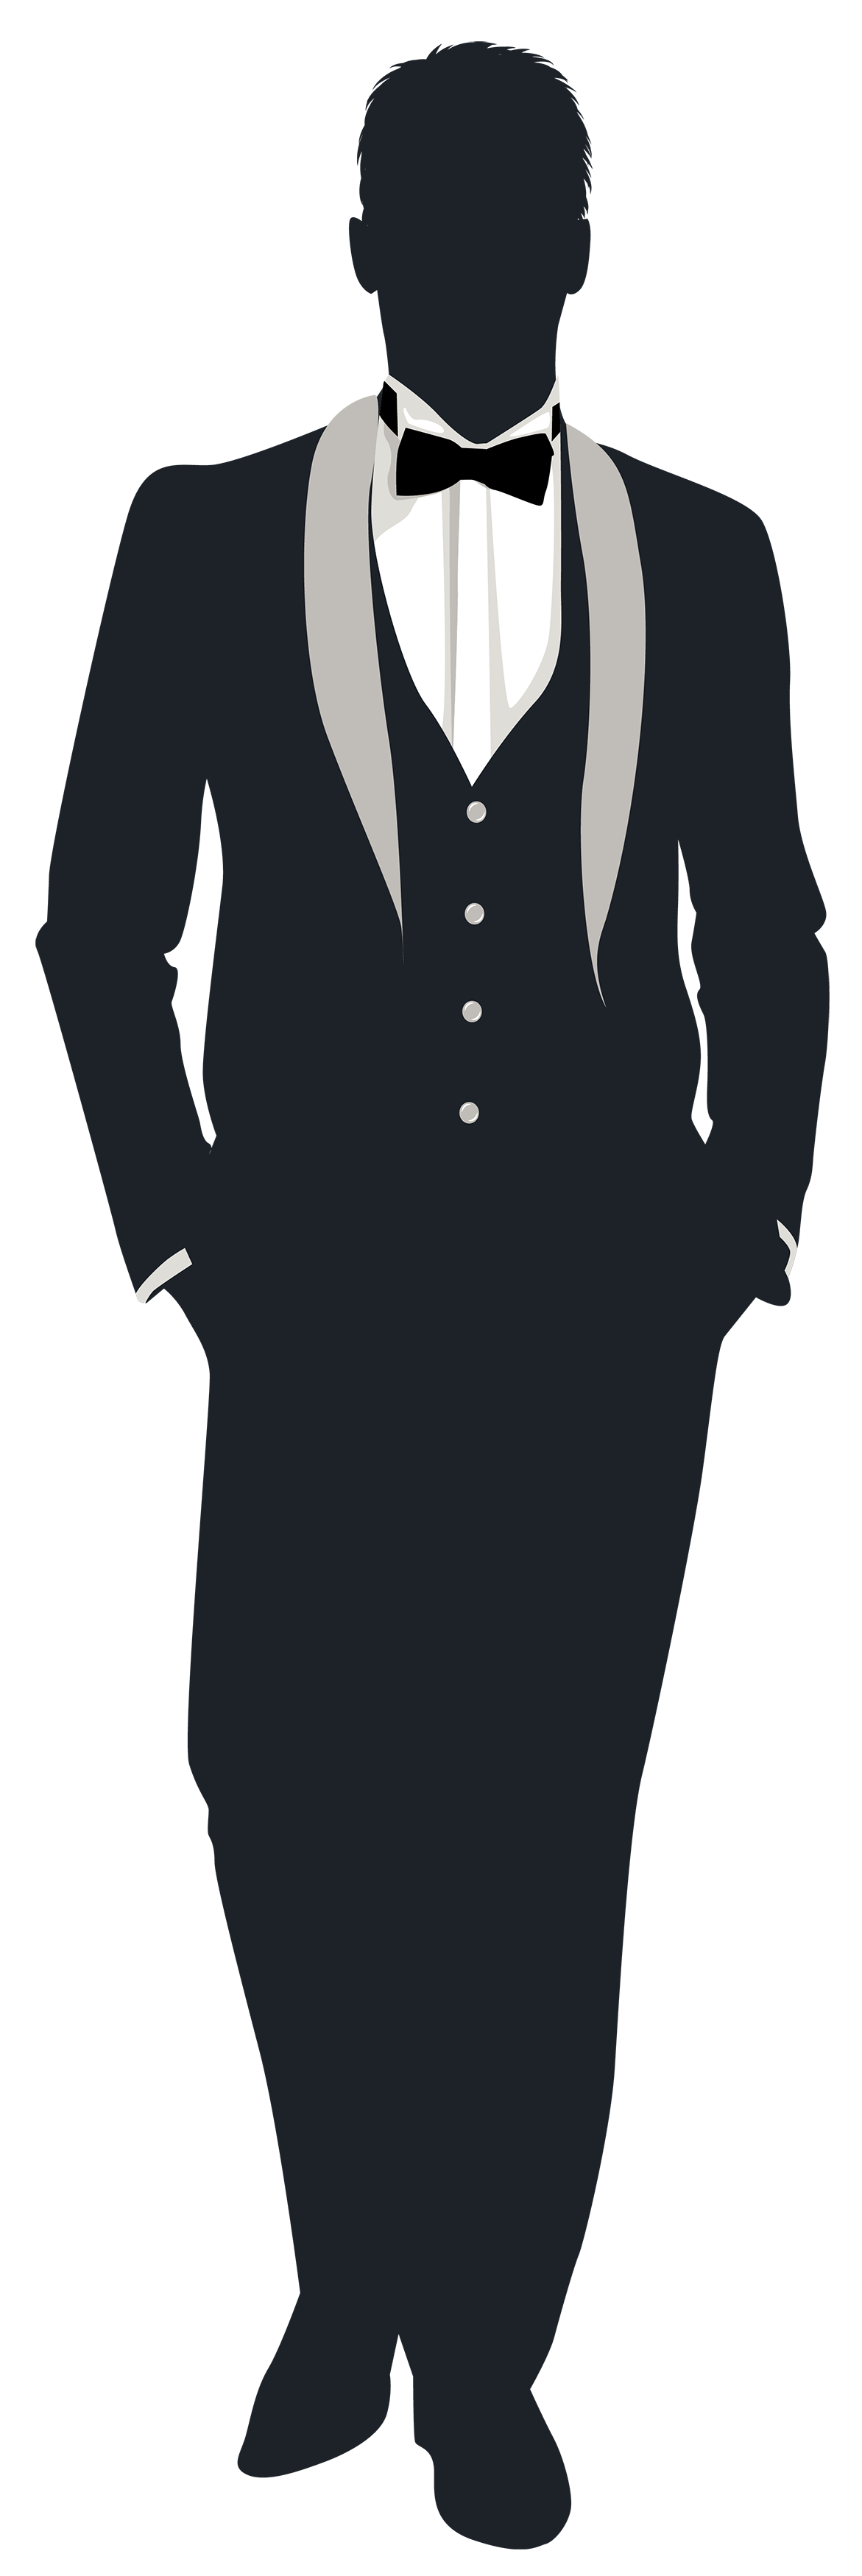 3683 Groom free clipart.